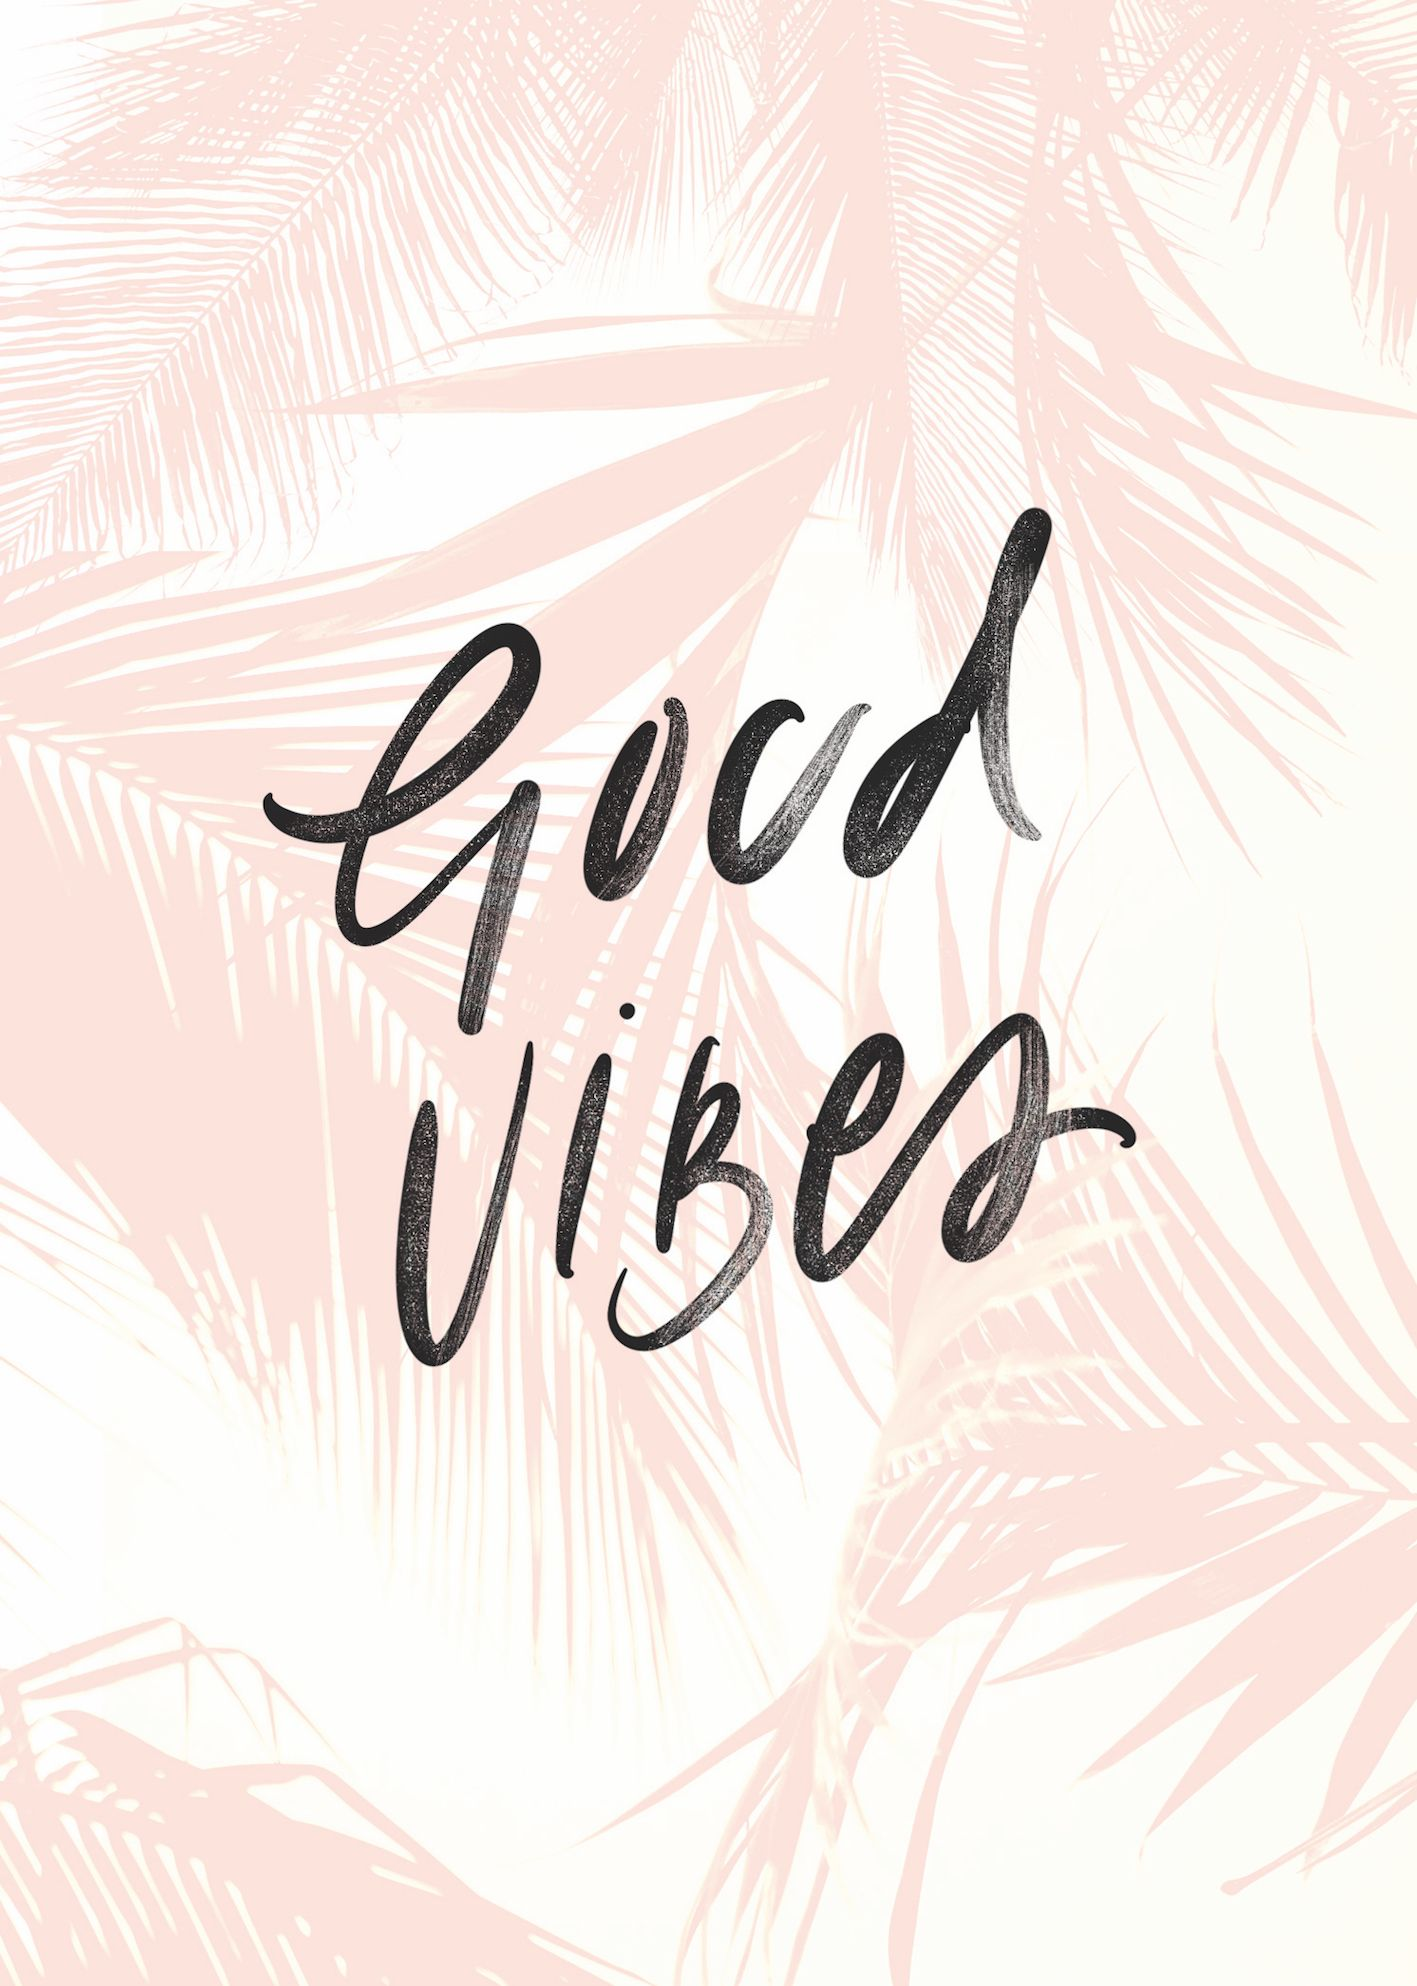 "Good Vibes Quotes Entrancing Good Vibes""  Albionfit  Words That Inspire Pinterest  Albion"